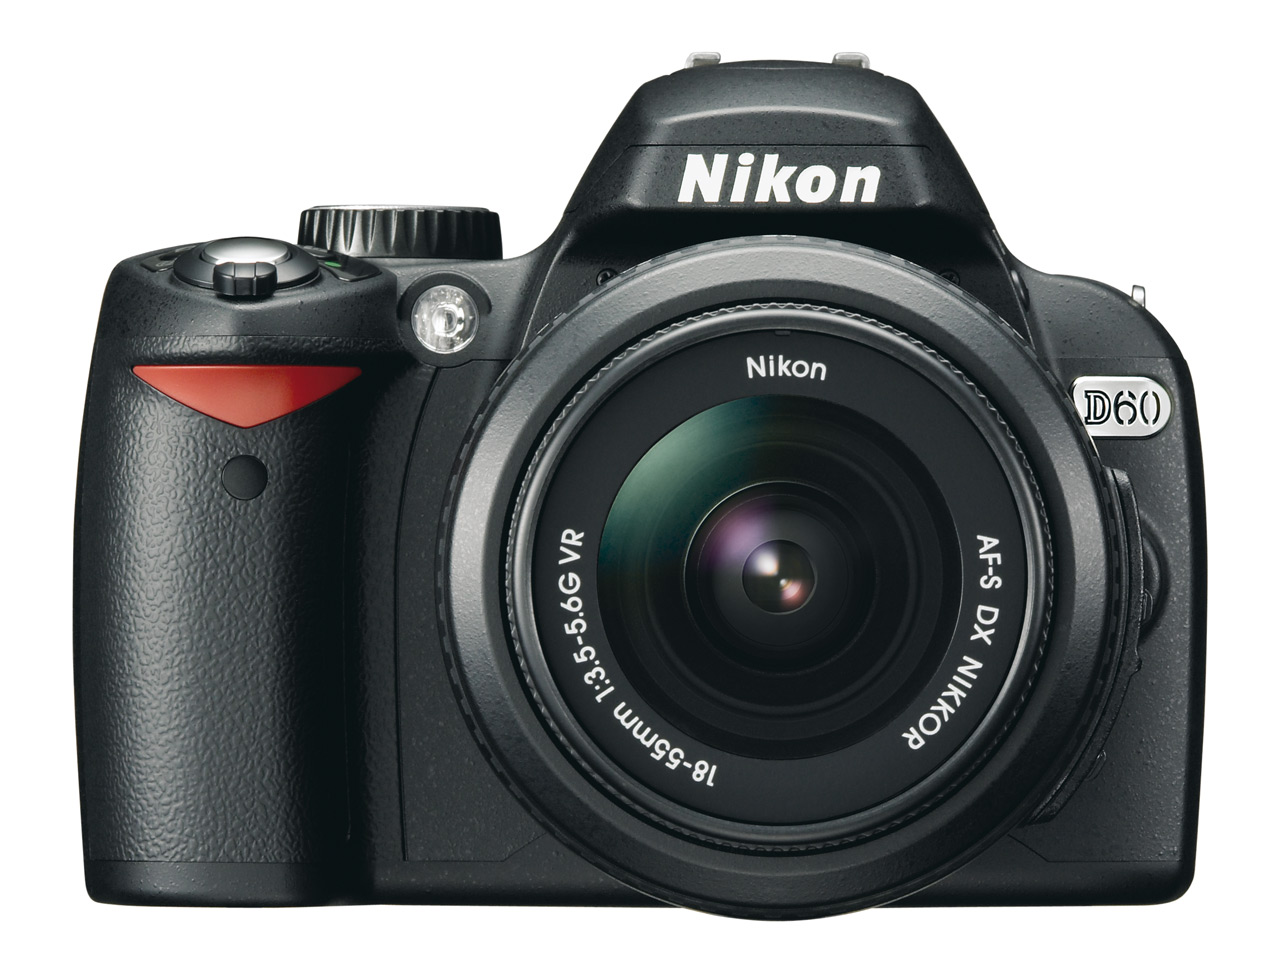 nikon announces d60 digital photography review rh dpreview com Nikon D60 Troubleshooting S01 User Manual for Nikon Camera